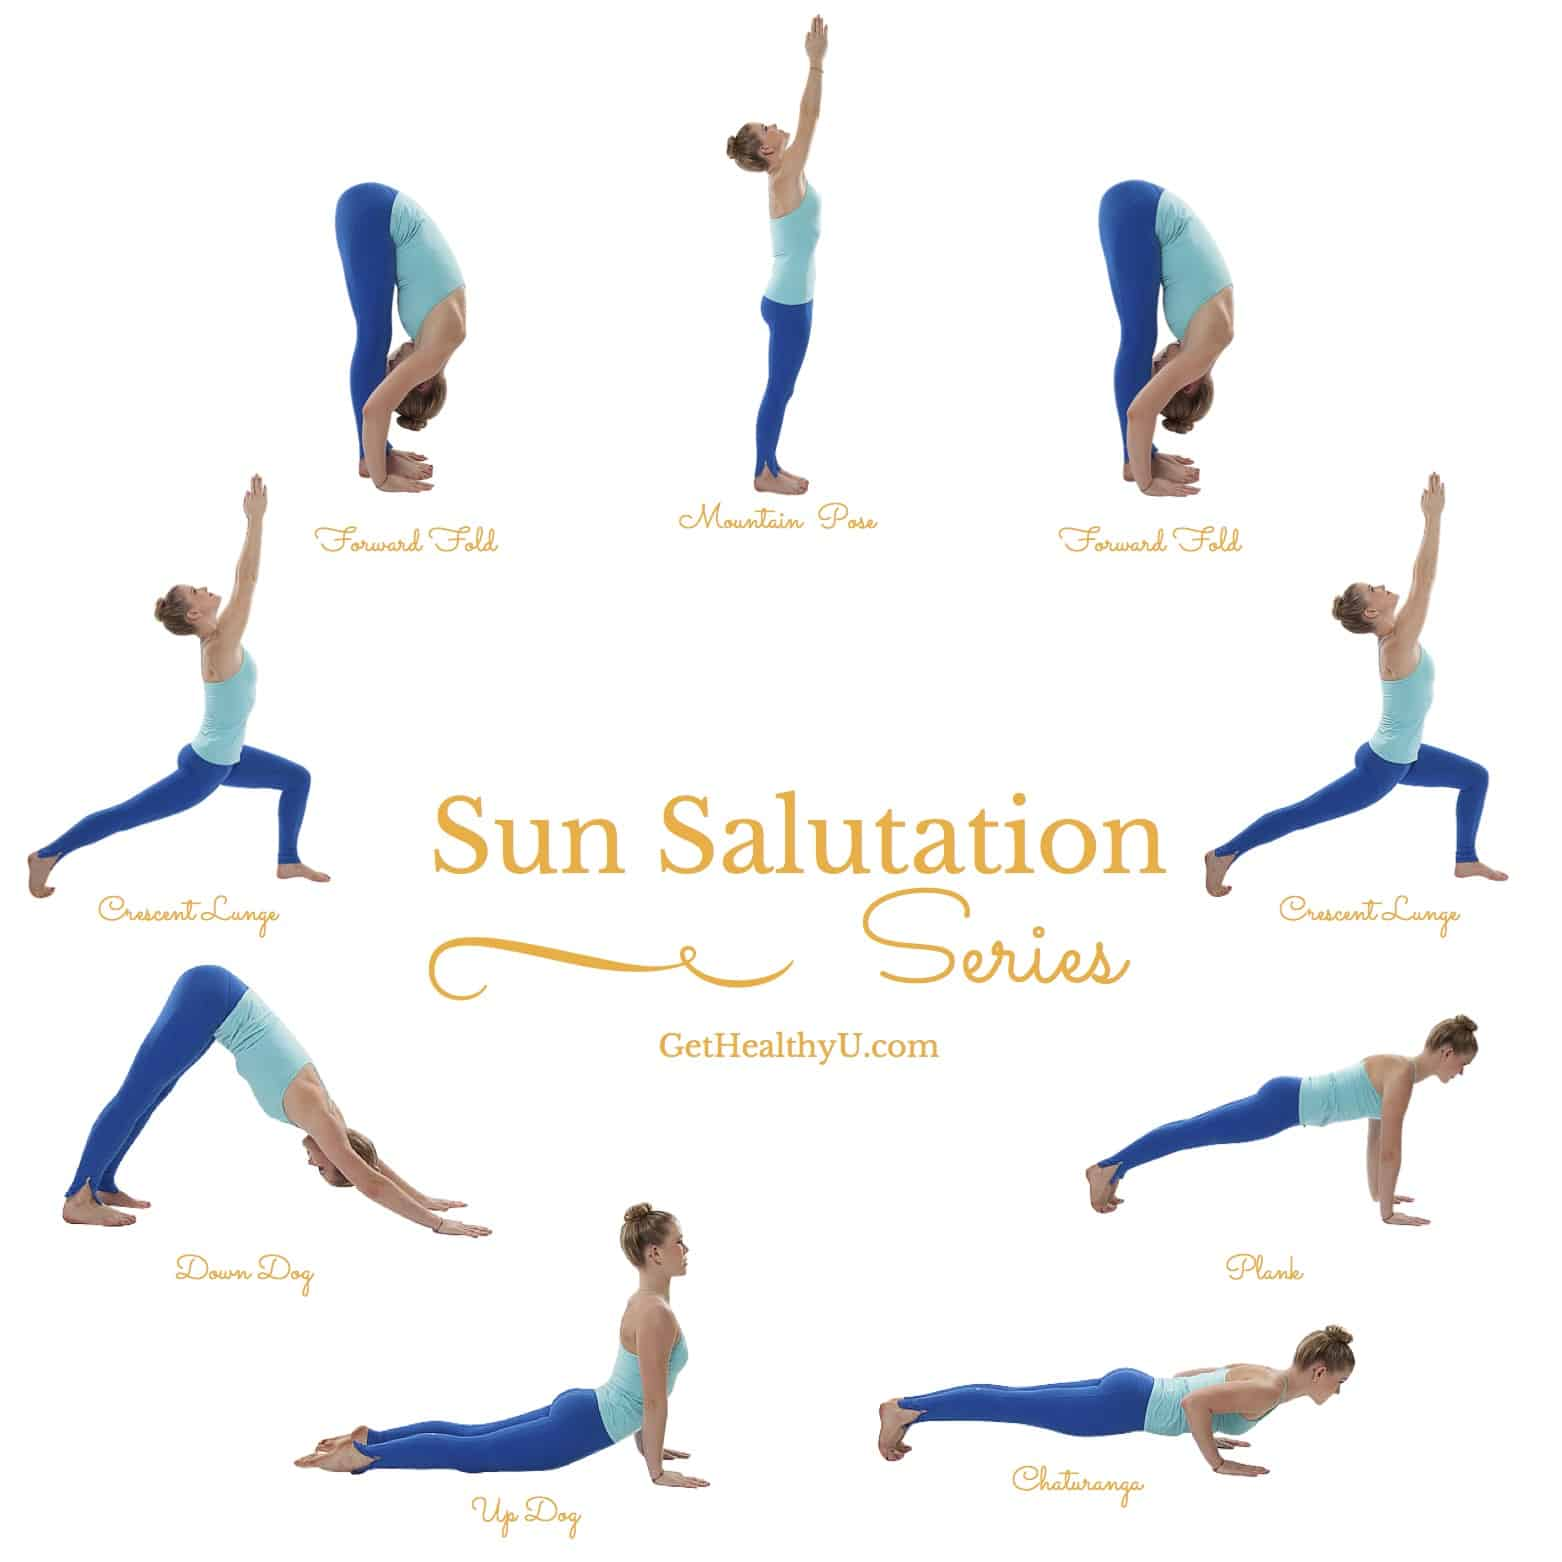 How To Do A Sun Salutation - Get Healthy U